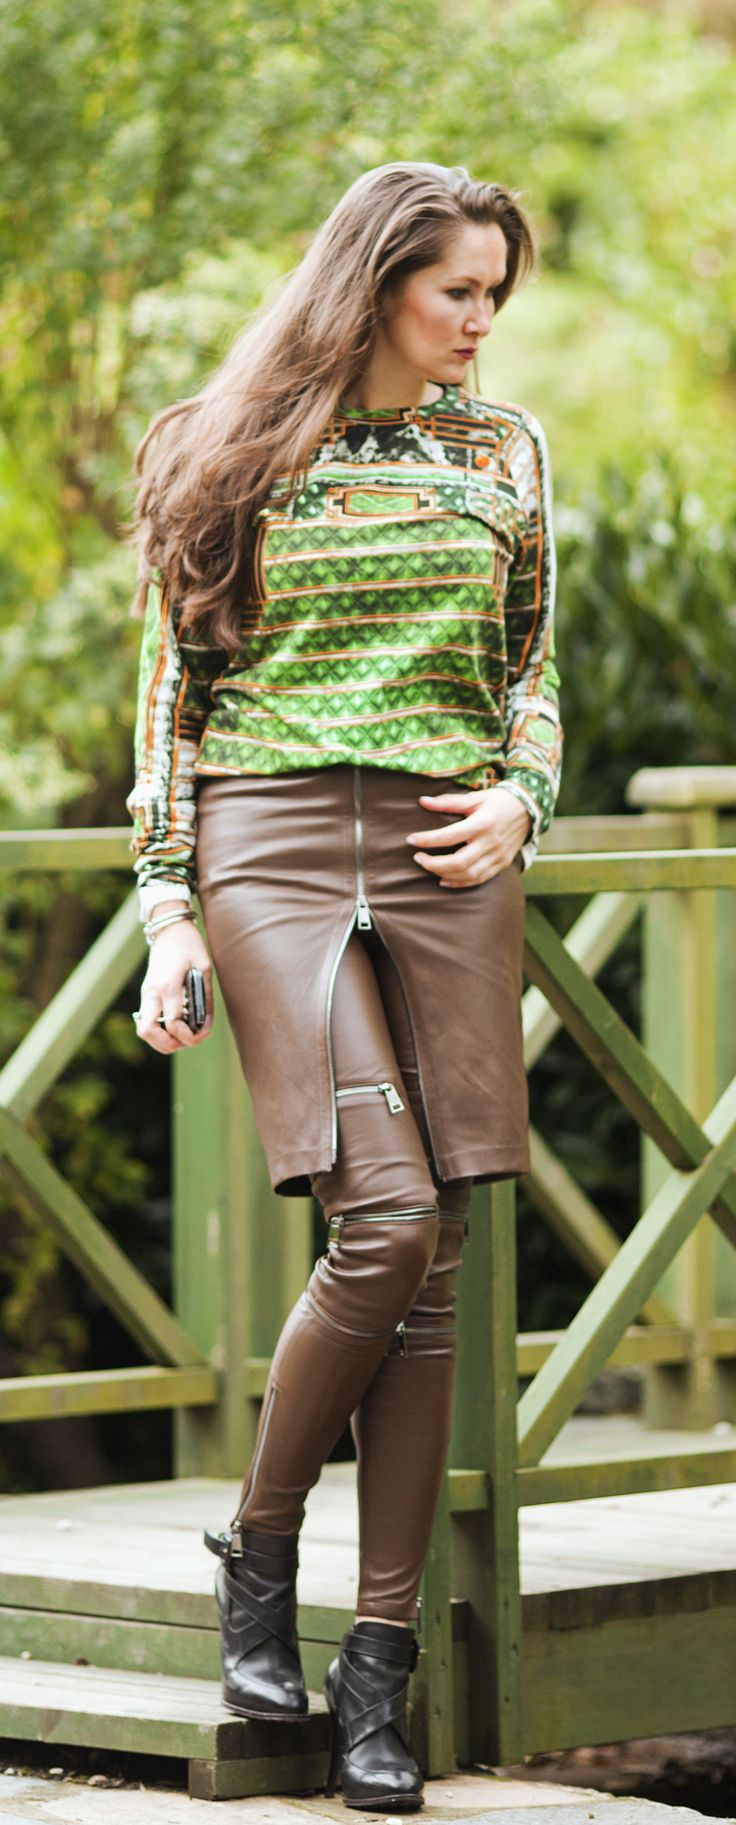 Stretch leather trousers and skirt by ADAMOFUR #leather #leatherstyle #inspiration #fashion #fallstyle